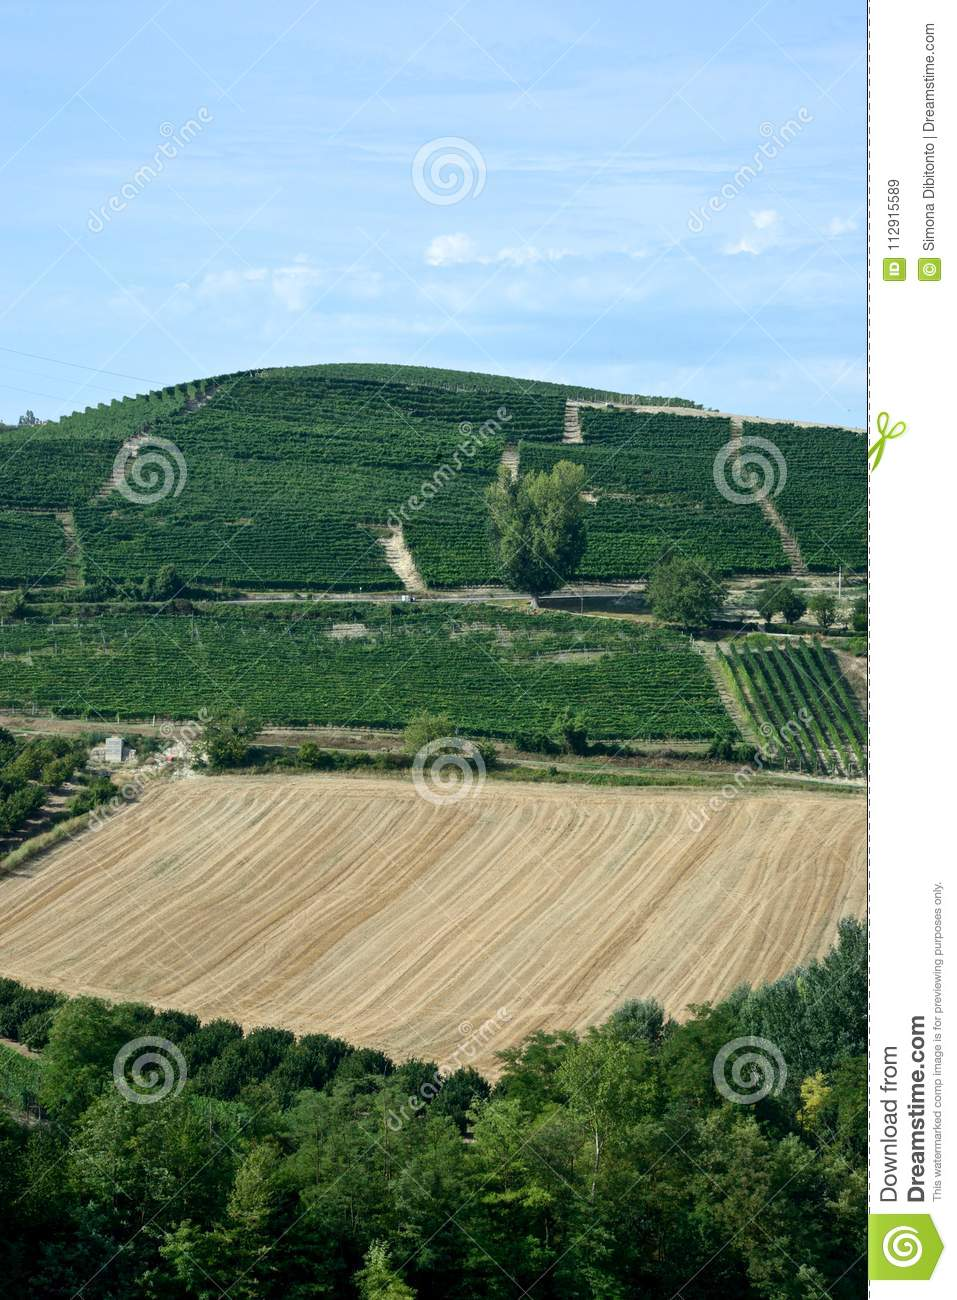 panoramic view of countryside with vineyard, cultivated fields